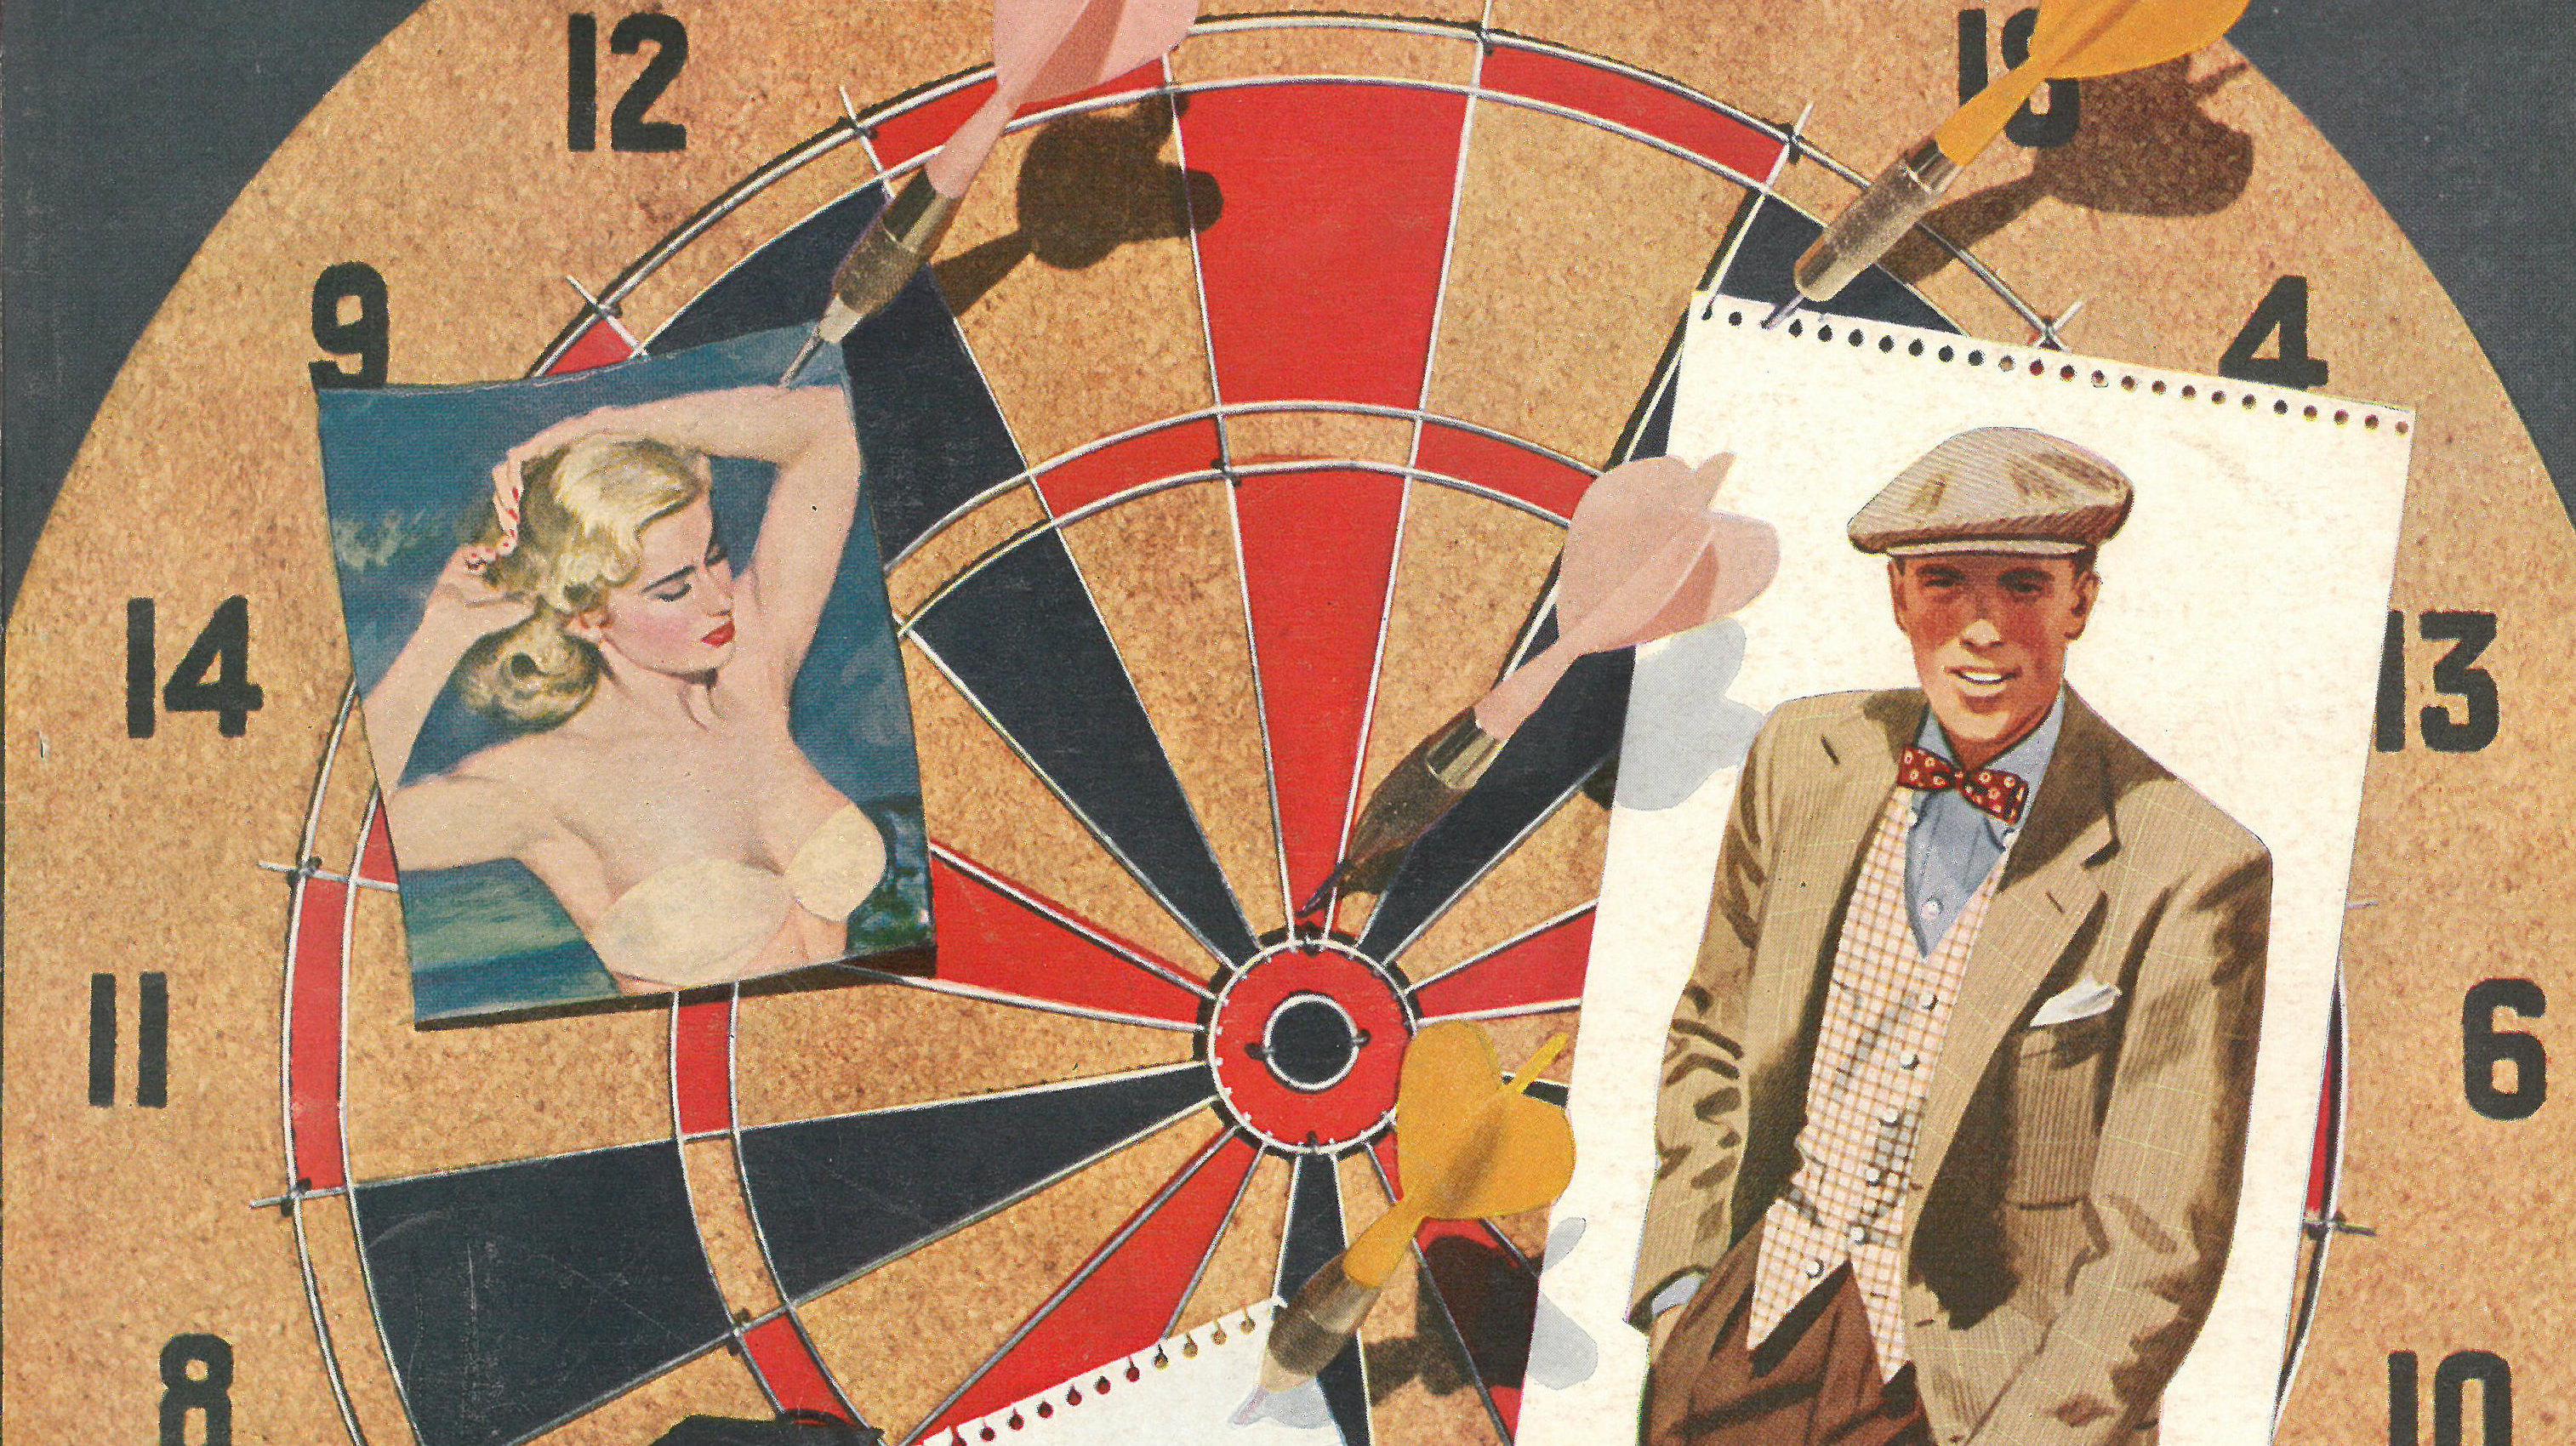 In this clip from a 1951 cover of Esquire, two of the magazine's abiding loves share a dartboard: a scantily-clad woman and a sharply dressed man. Head here to see the full cover, and many others, plucked from the magazine's archives.